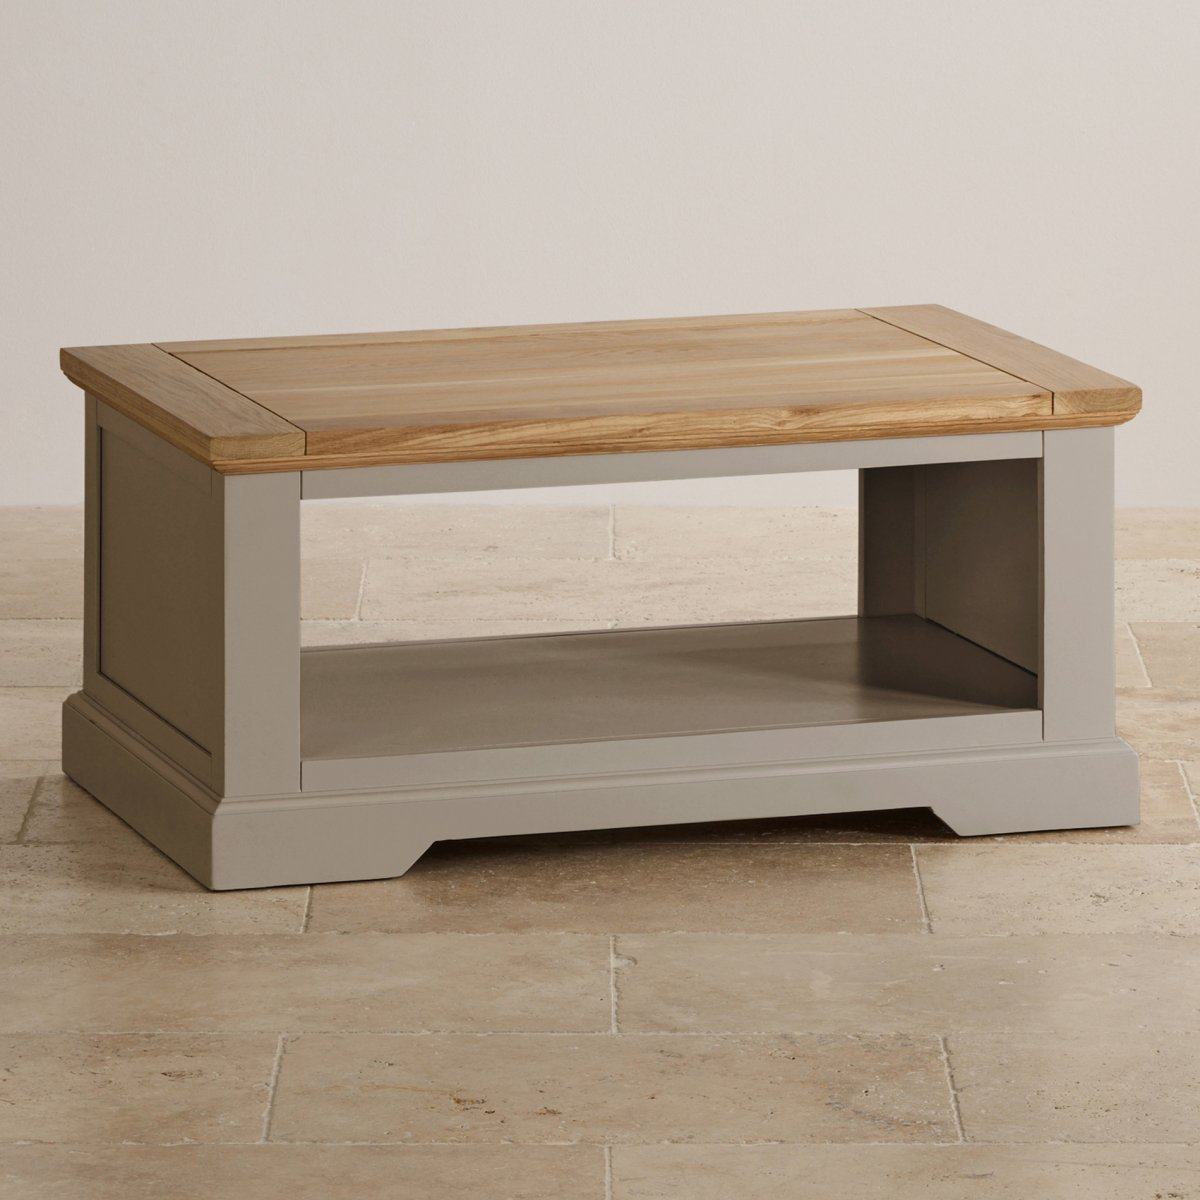 St ives grey coffee table with brushed oak top Coffee tables uk